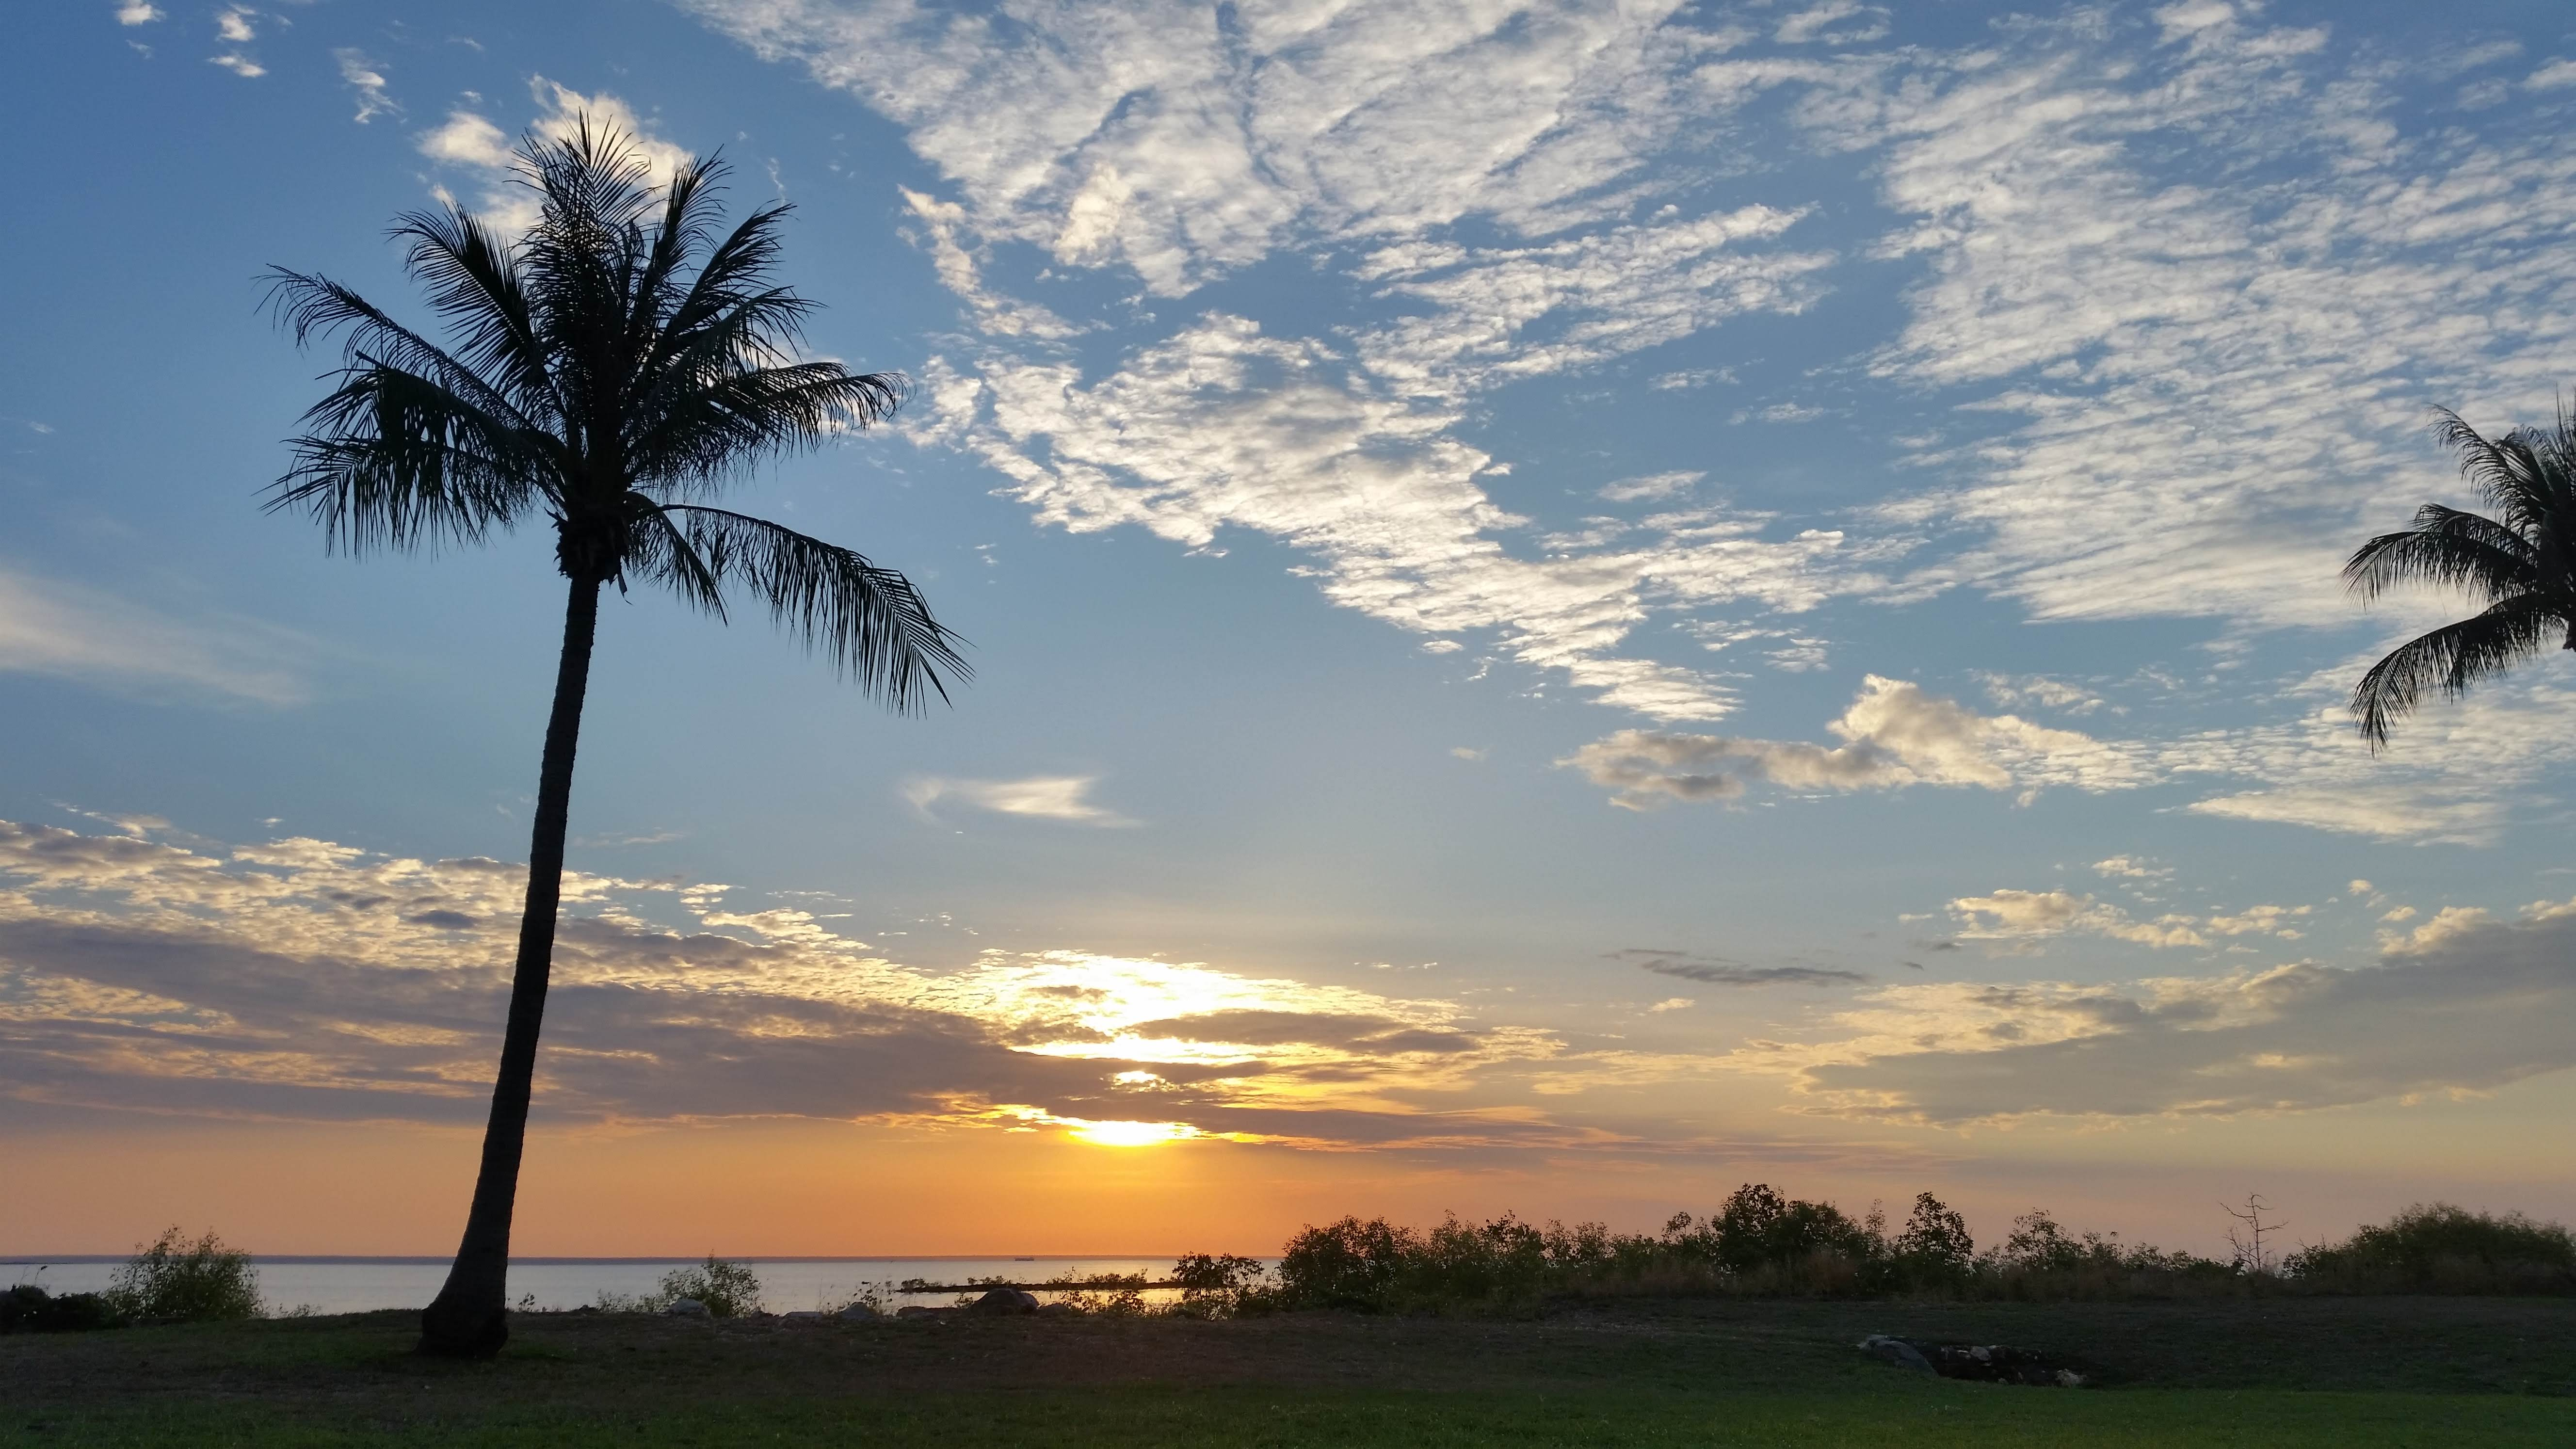 Sunset at the beach in Darwin. Credit: Nicholas Loveday